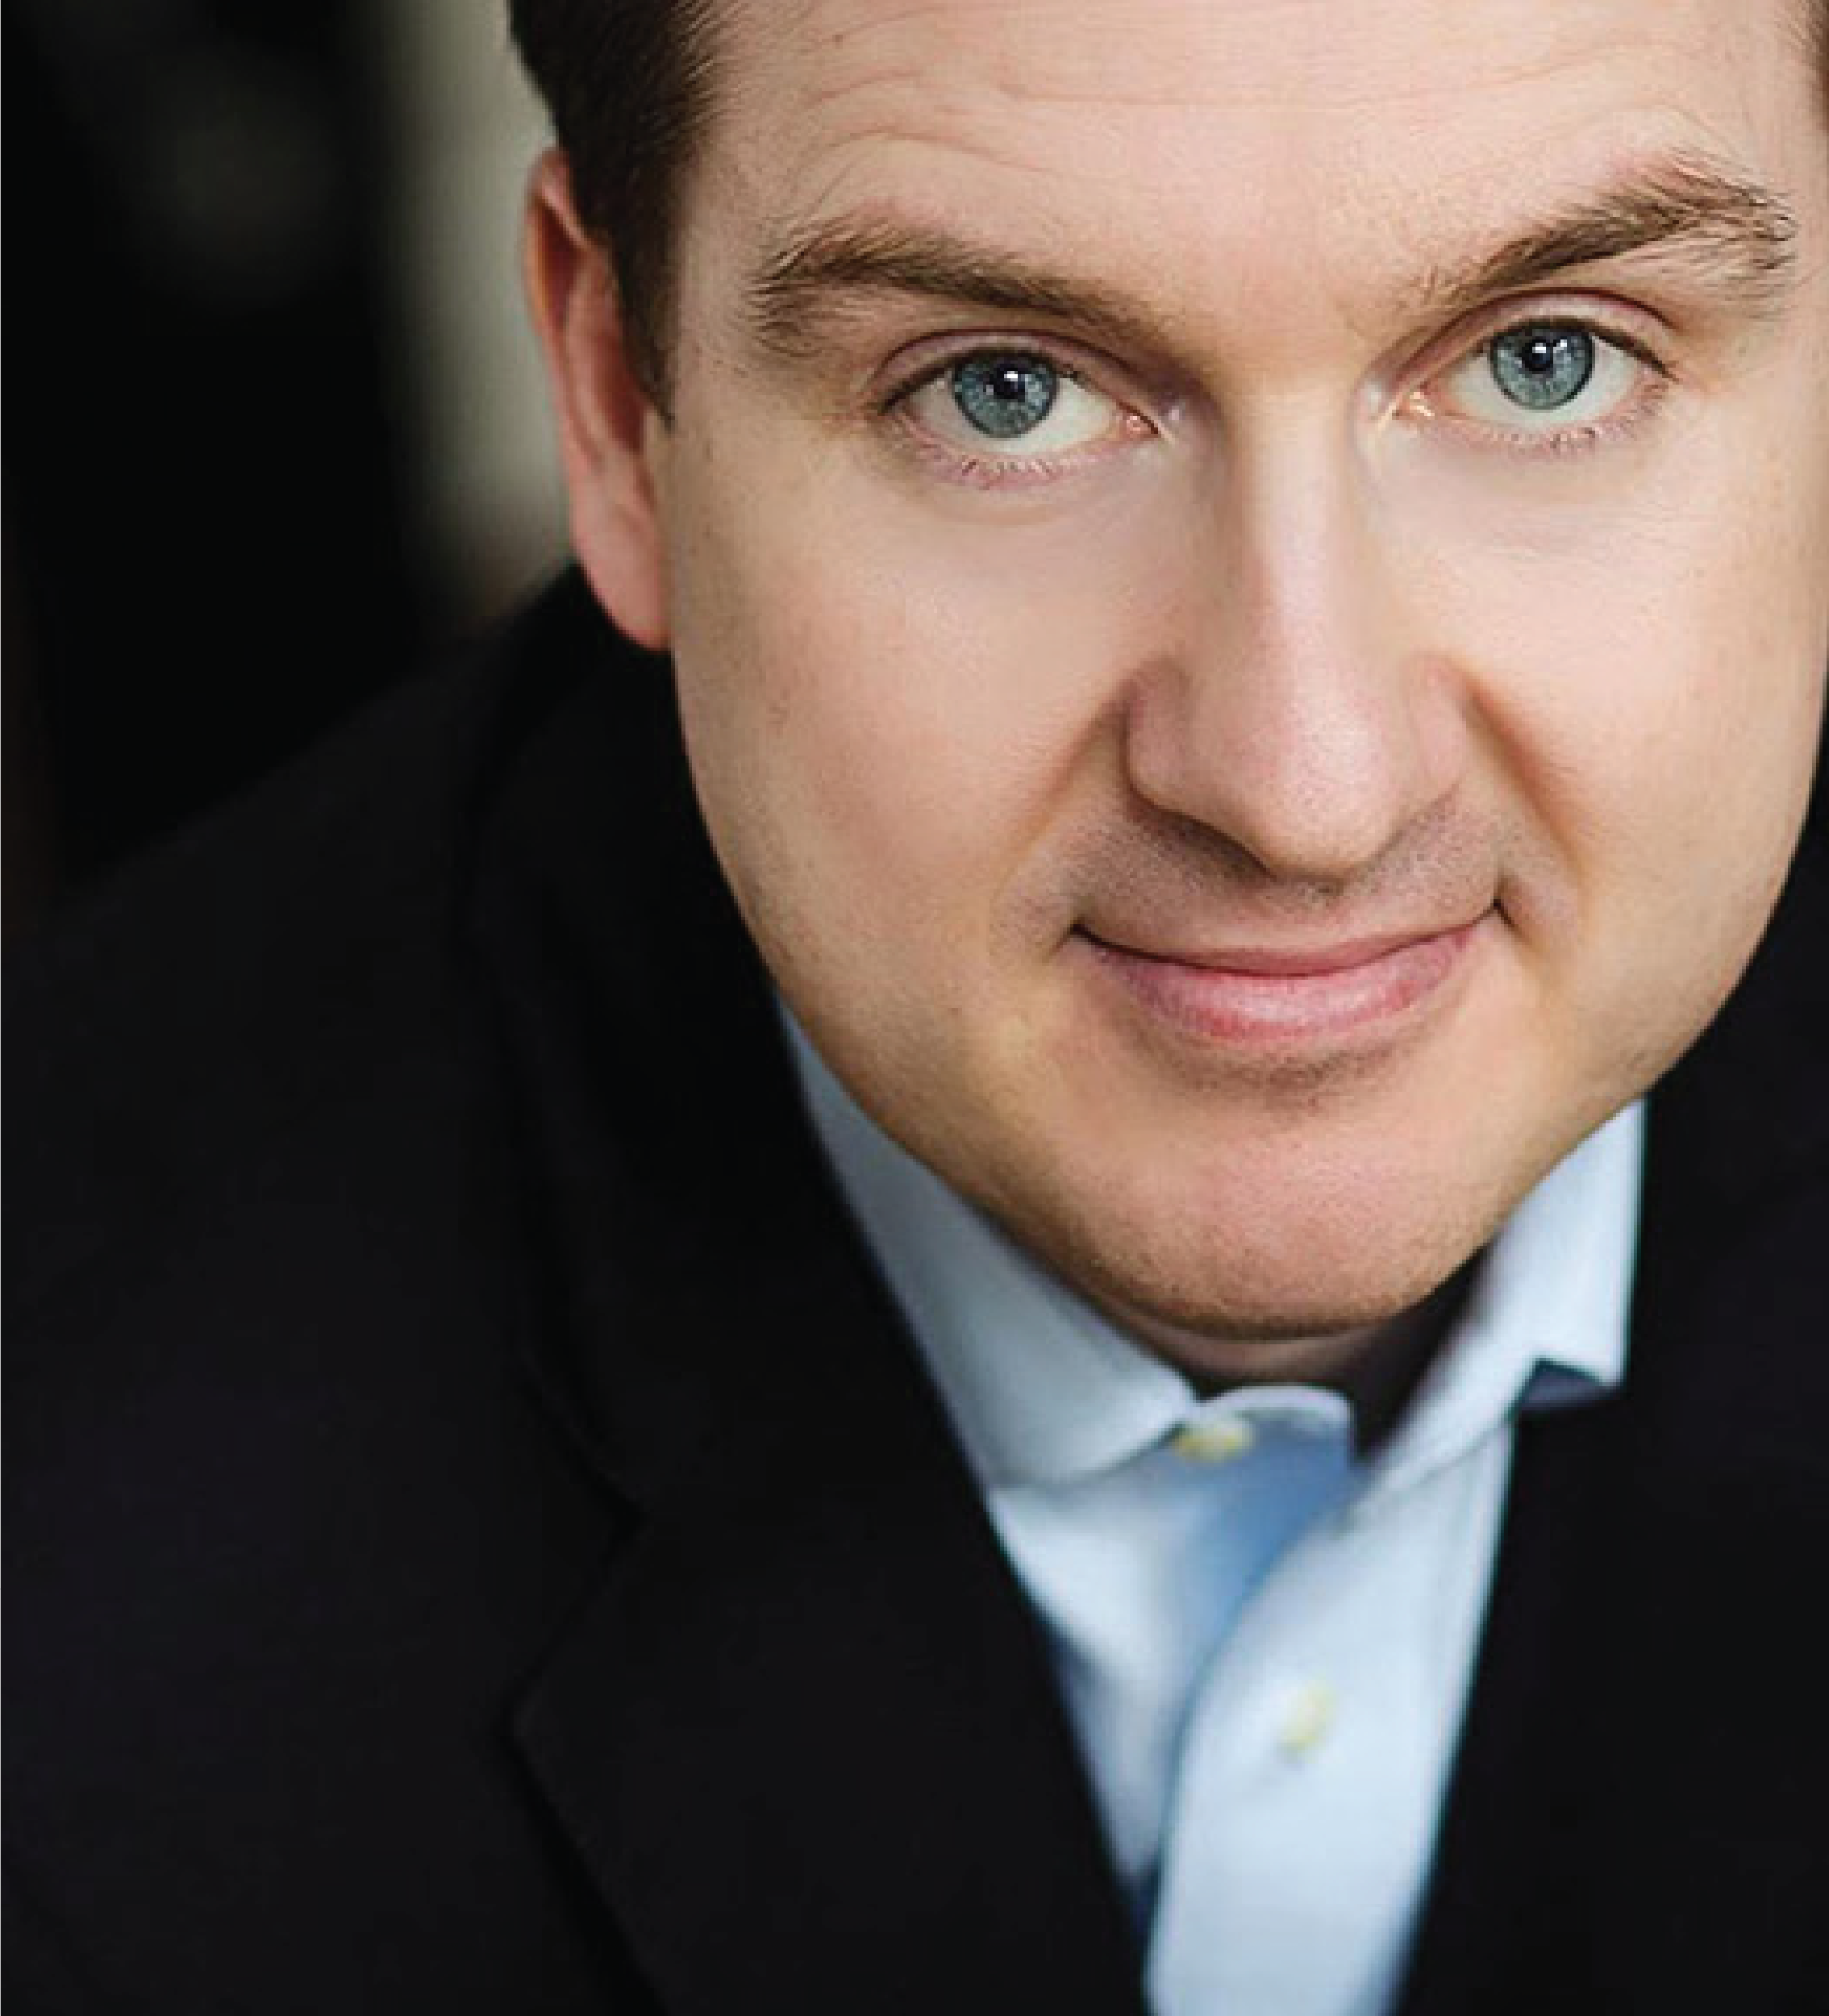 Sam Hinkie Will be a keynote speaker at Cleo Connect 2019